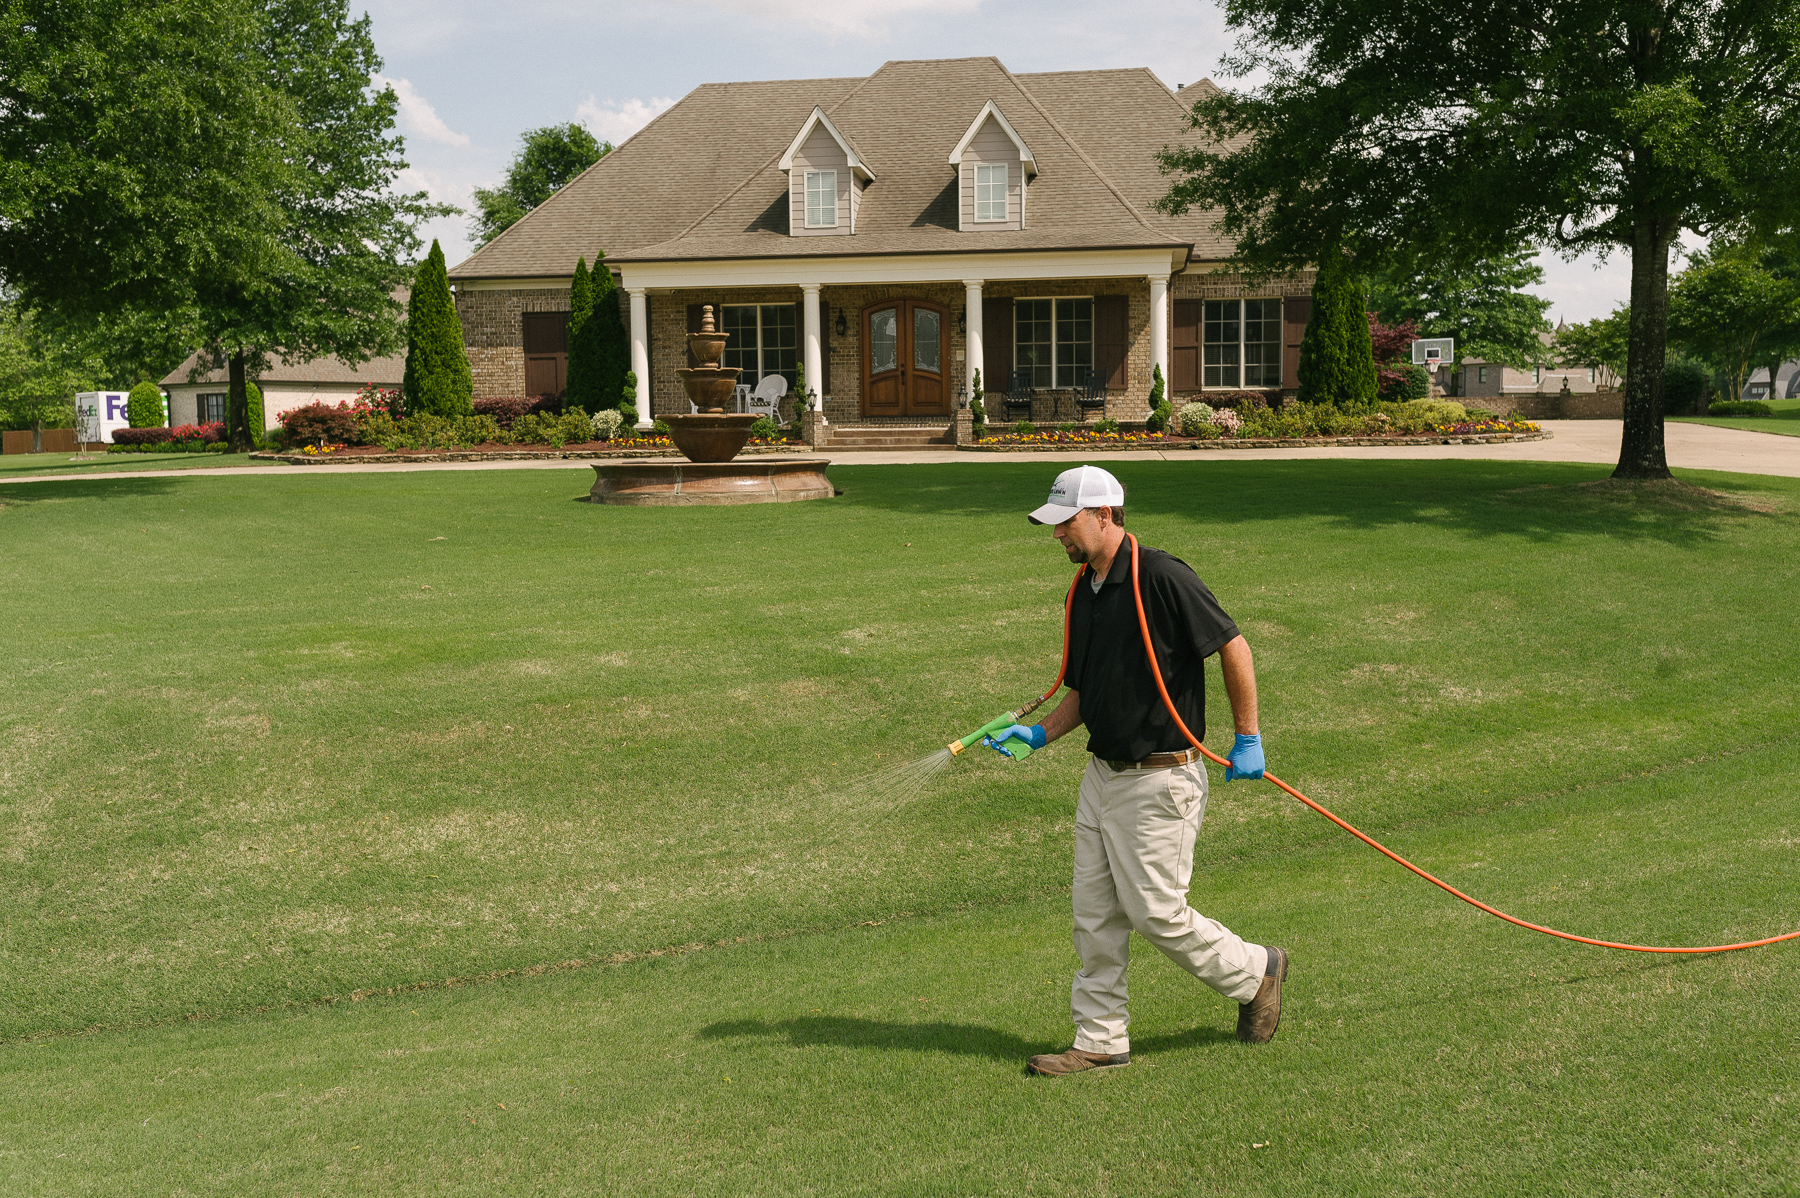 lawn care technician spraying lawn in Memphis, TN